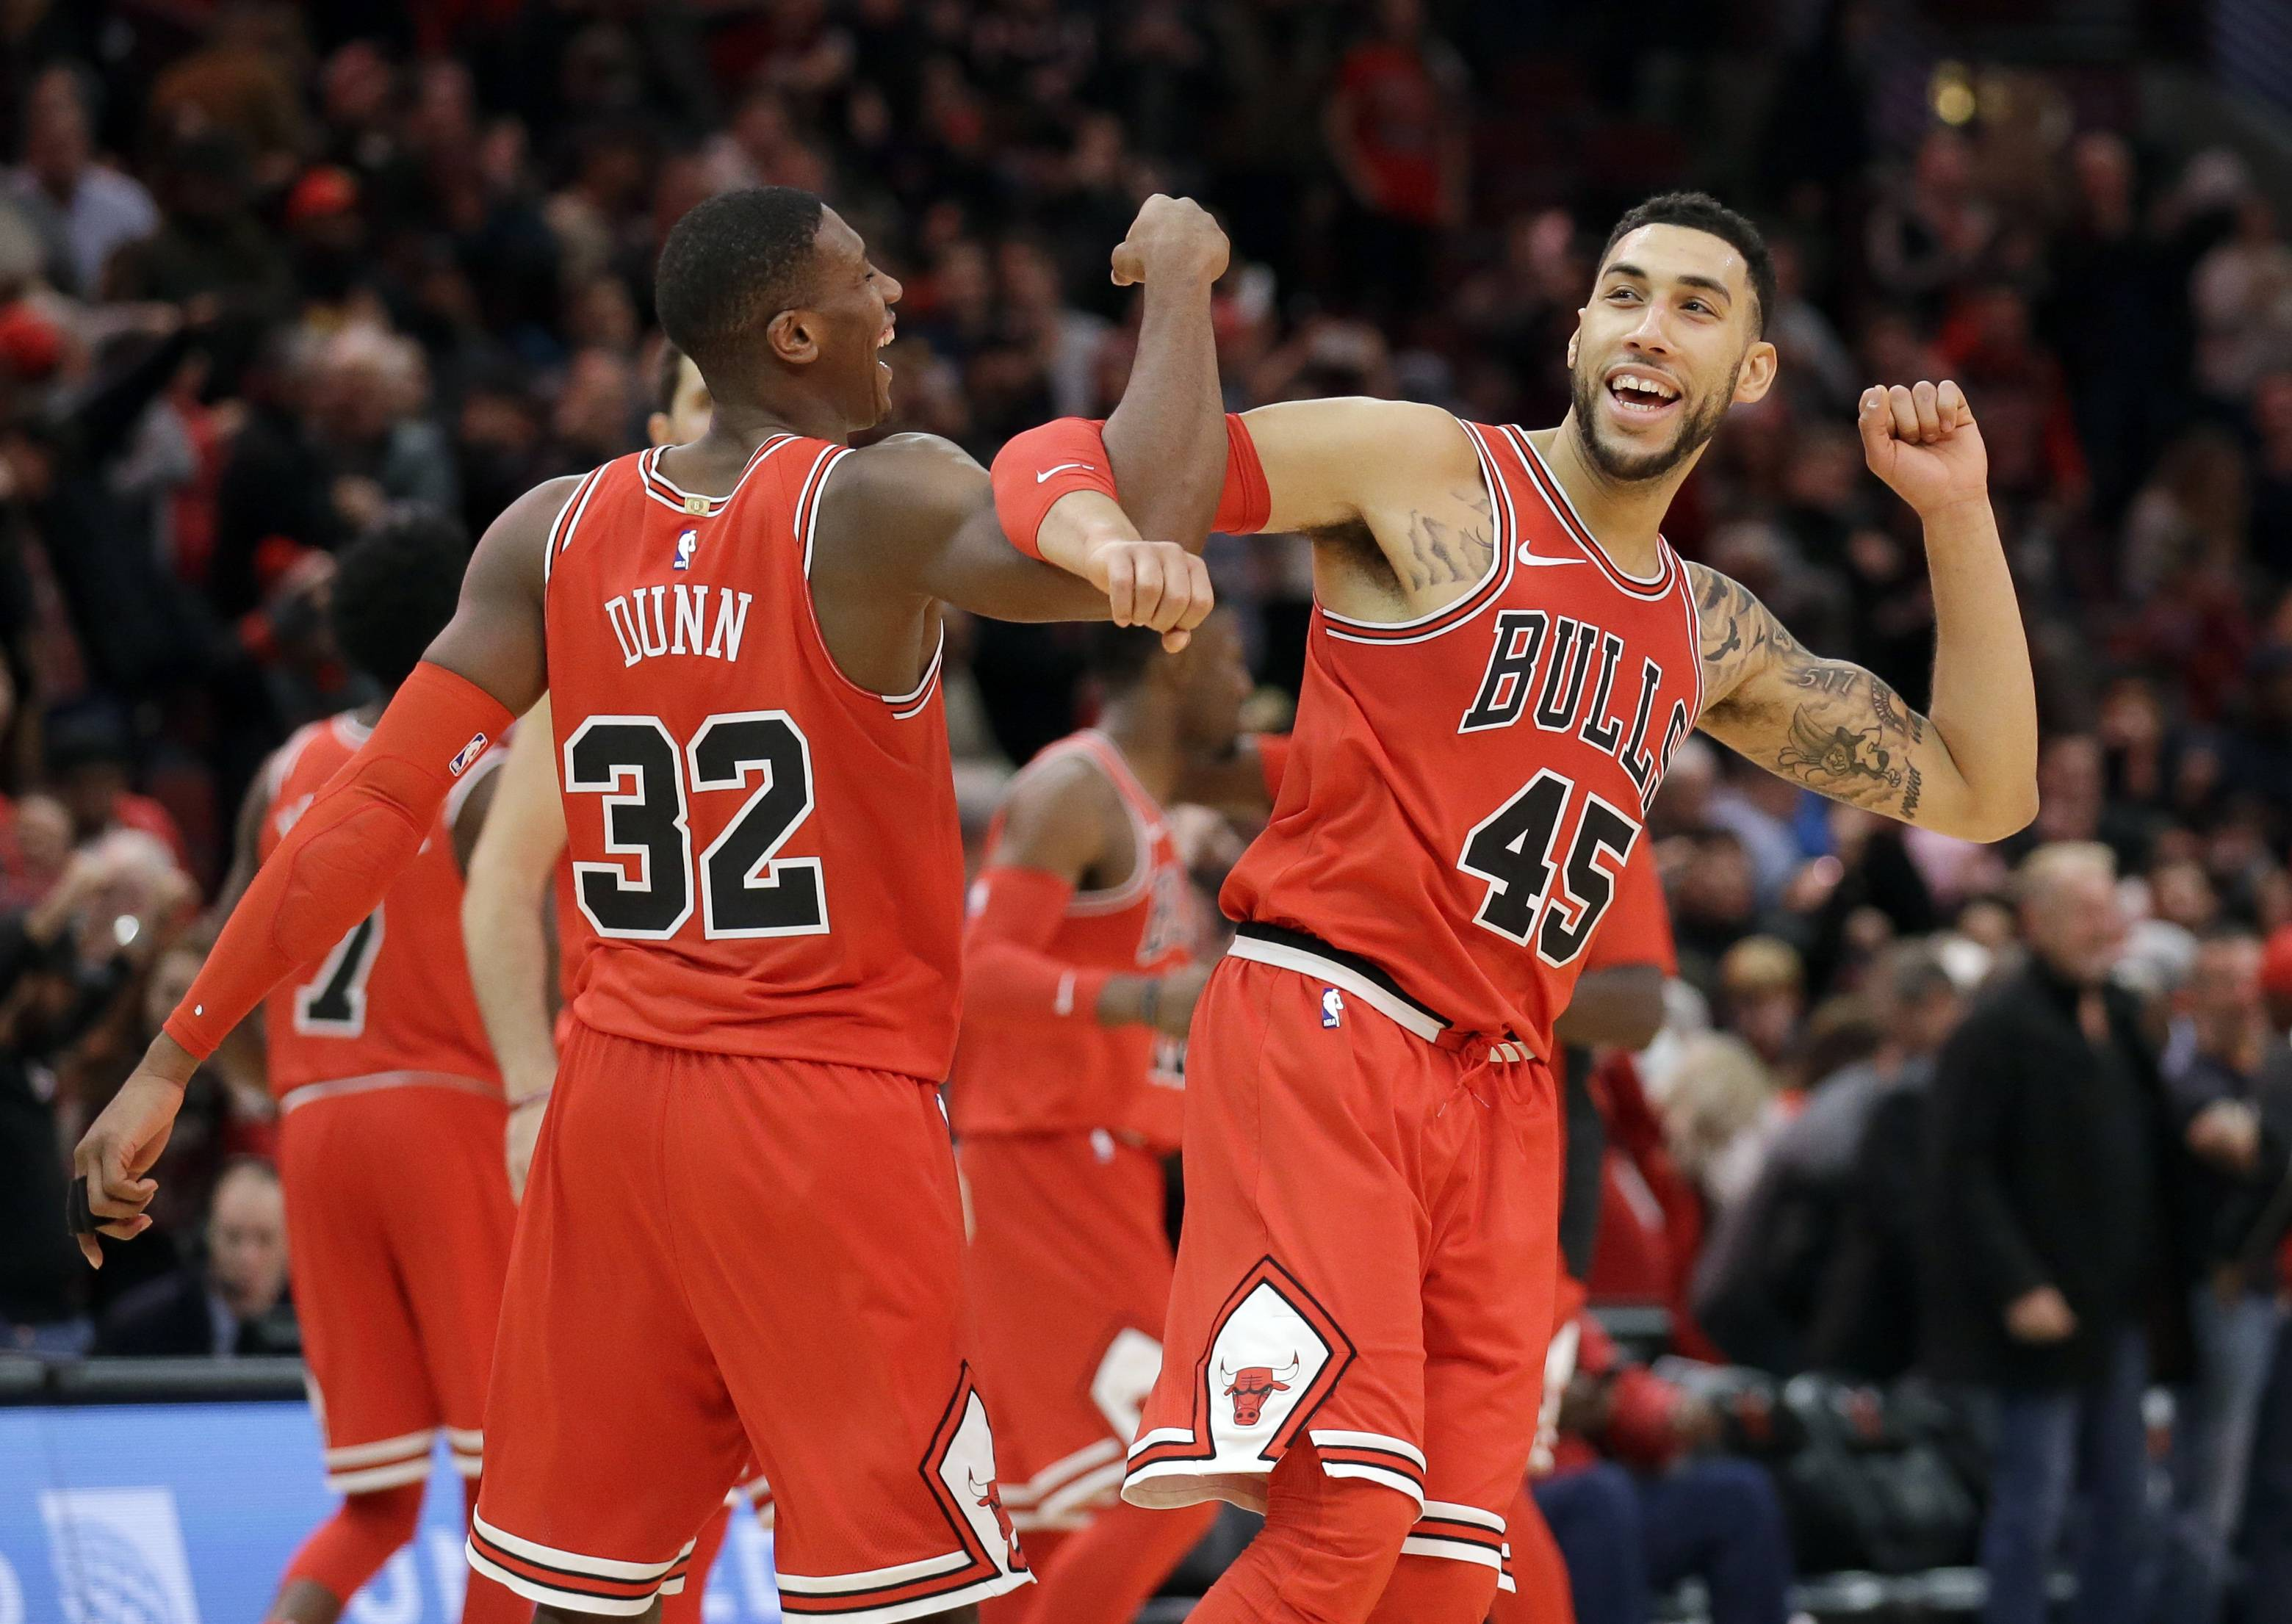 Chicago Bulls guard Kris Dunn, left, celebrates with Denzel Valentine after the Chicago Bulls defeated the Utah Jazz 103-100 in an NBA basketball game Wednesday, Dec. 13, 2017, in Chicago.